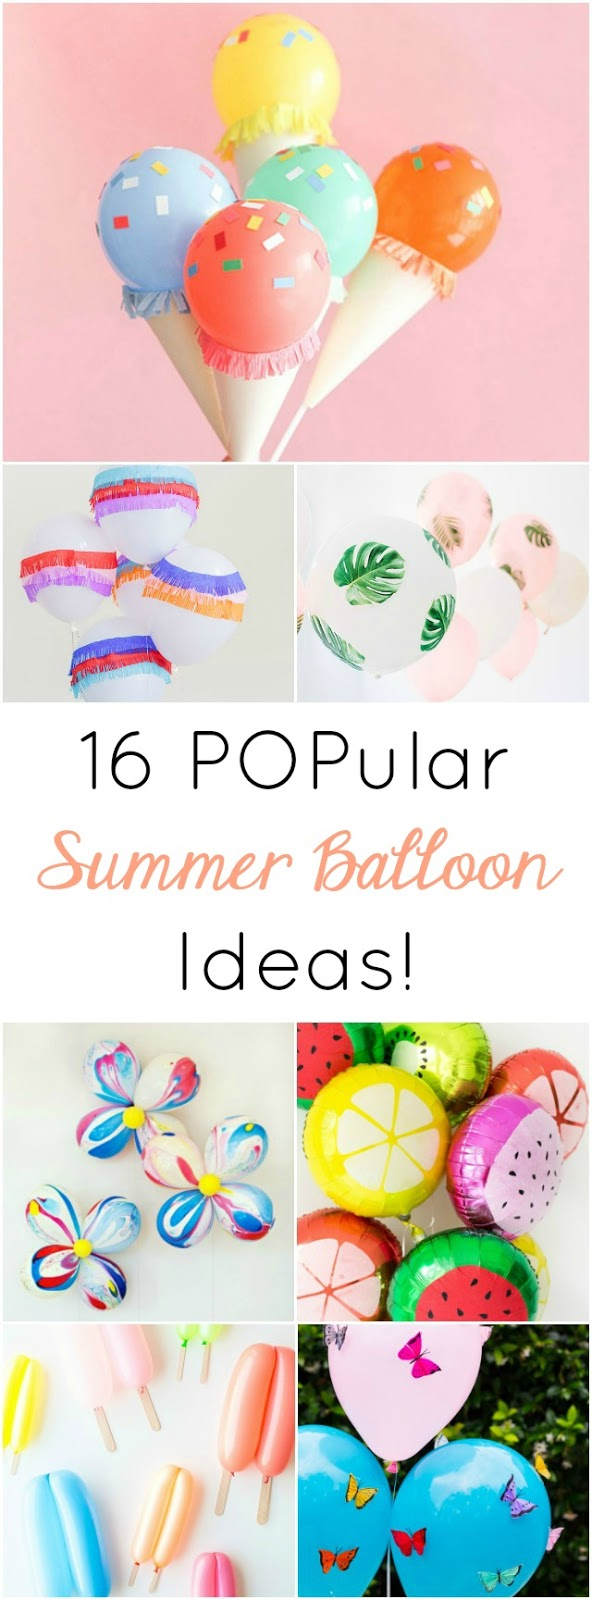 These colorful balloon crafts will really POP at a summer birthday party, ice cream social, or pool party!